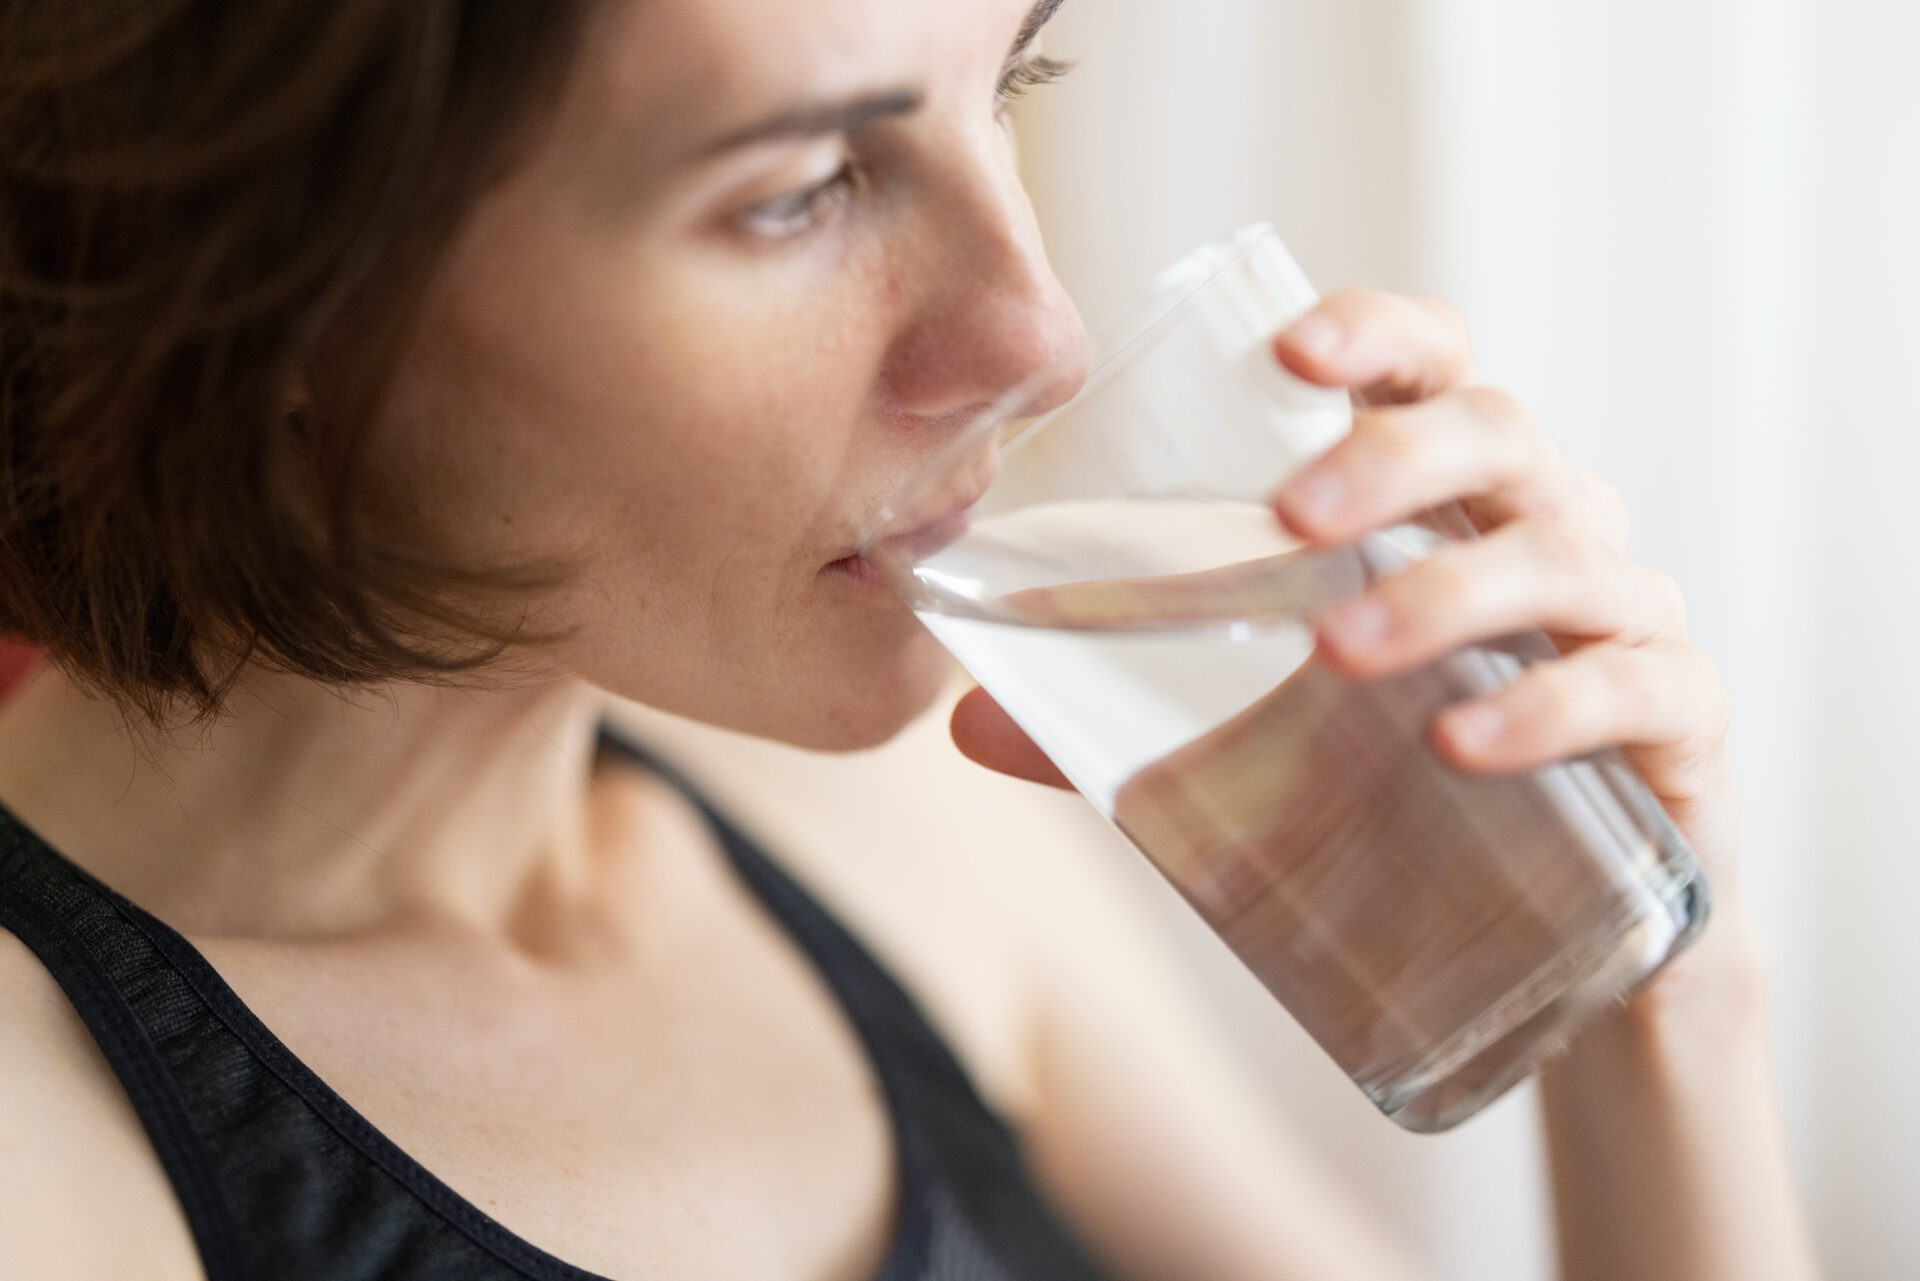 Drinking sufficient water could prevent heart failure